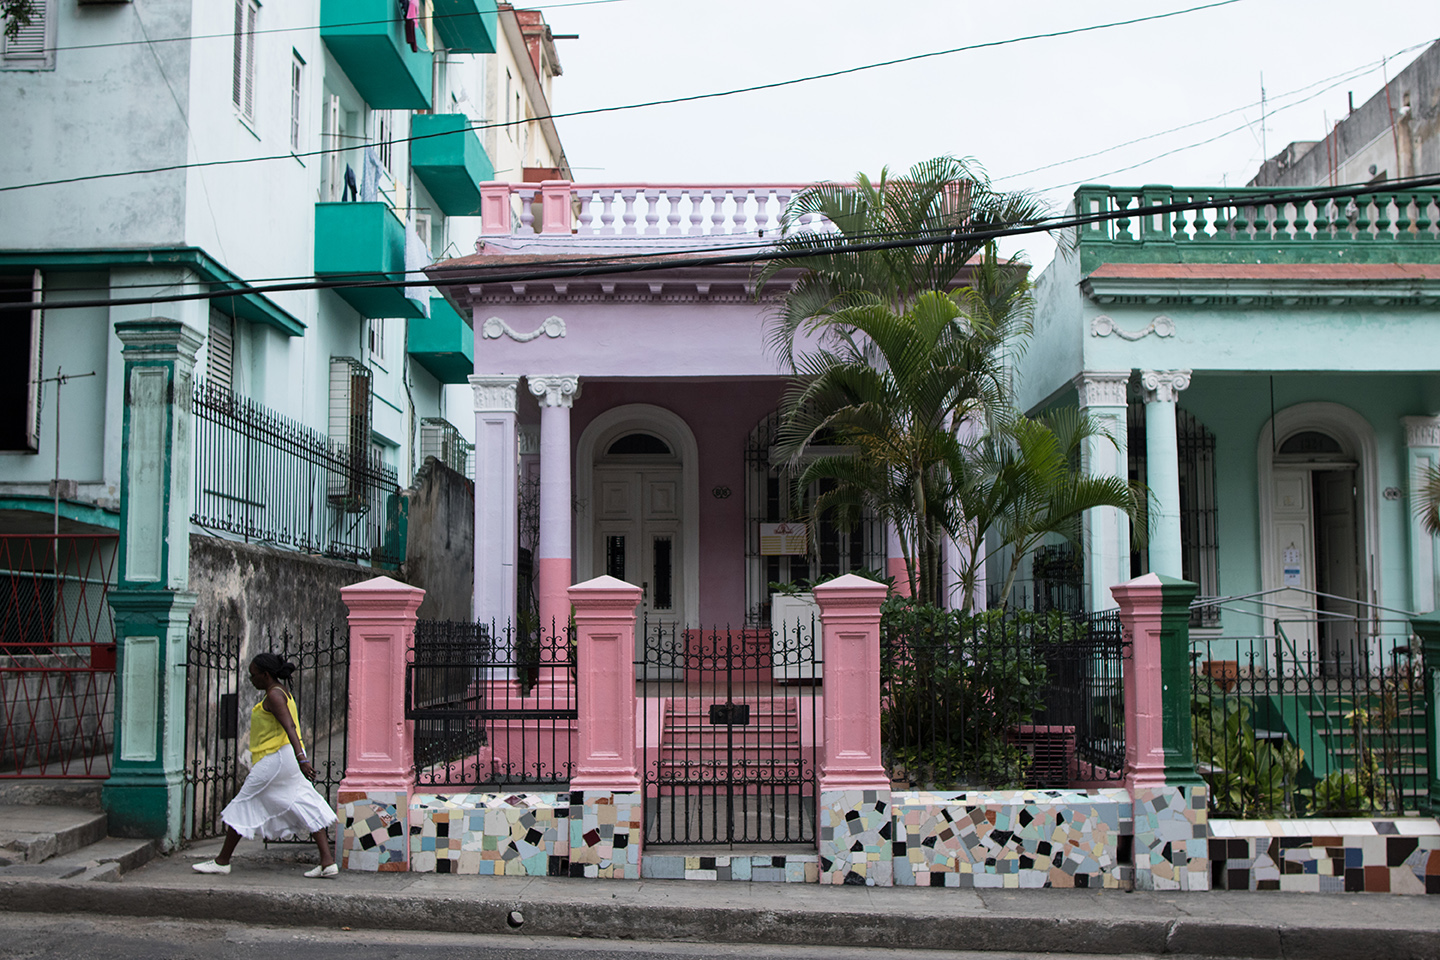 Havana's unique architecture and efforts to preserve it